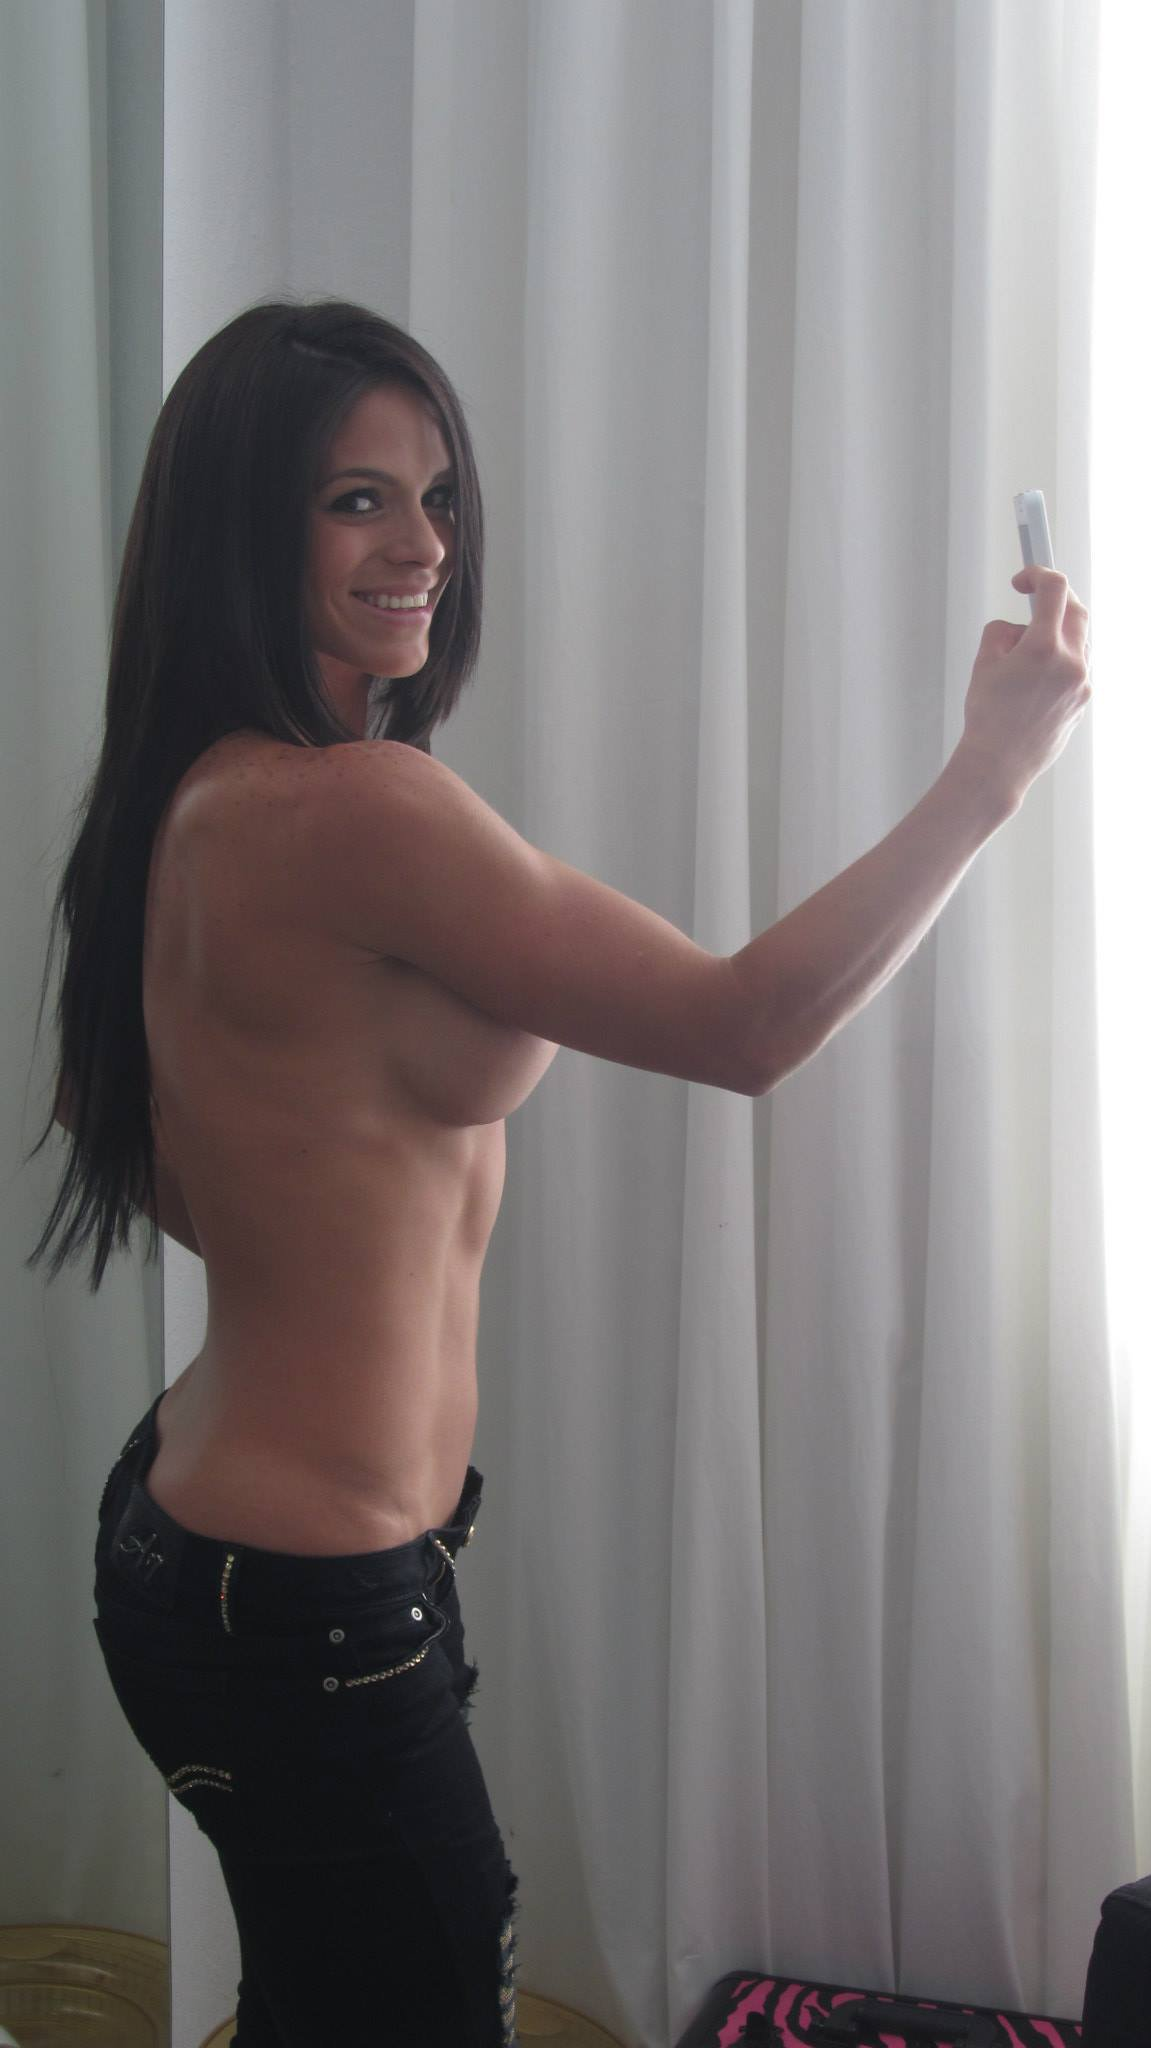 Michelle lewin sexy boobs